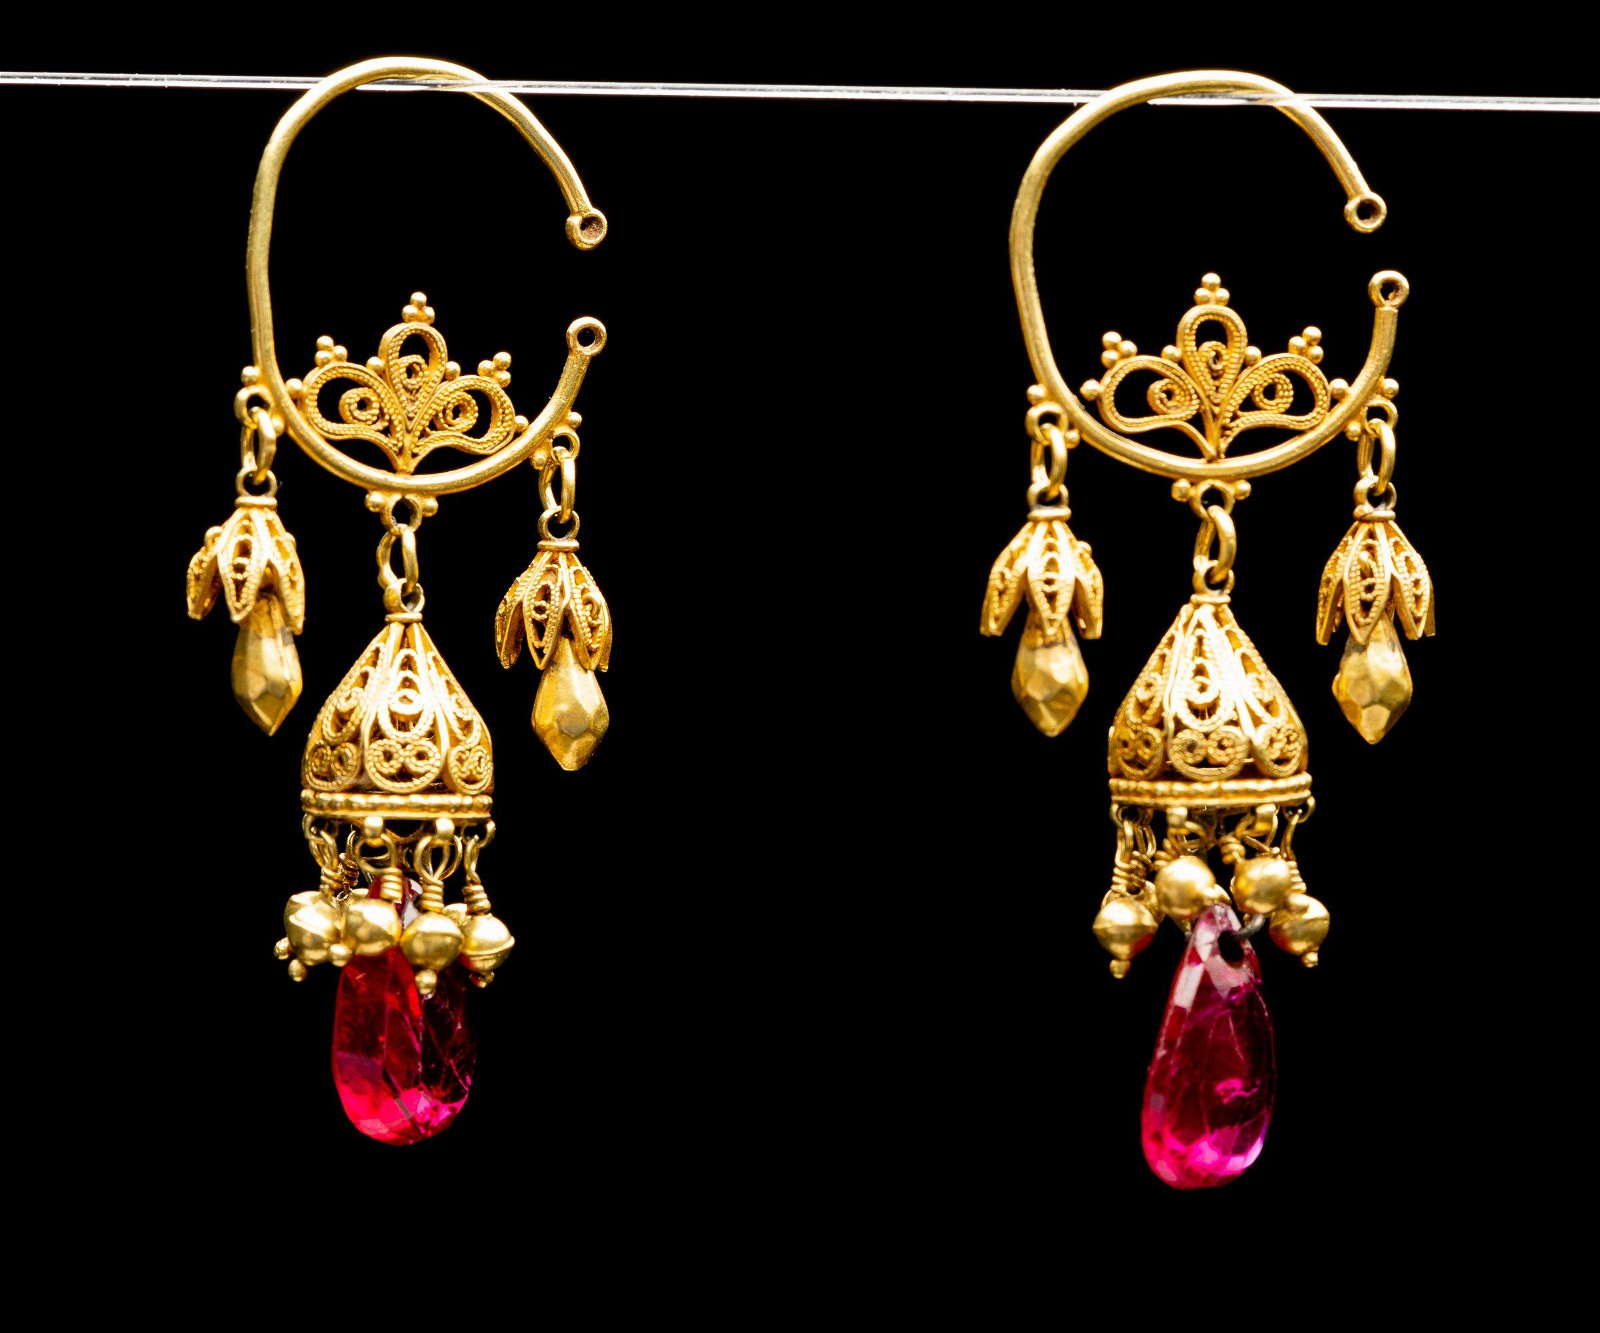 A pair of spectacular 21-22k gold and faceted red